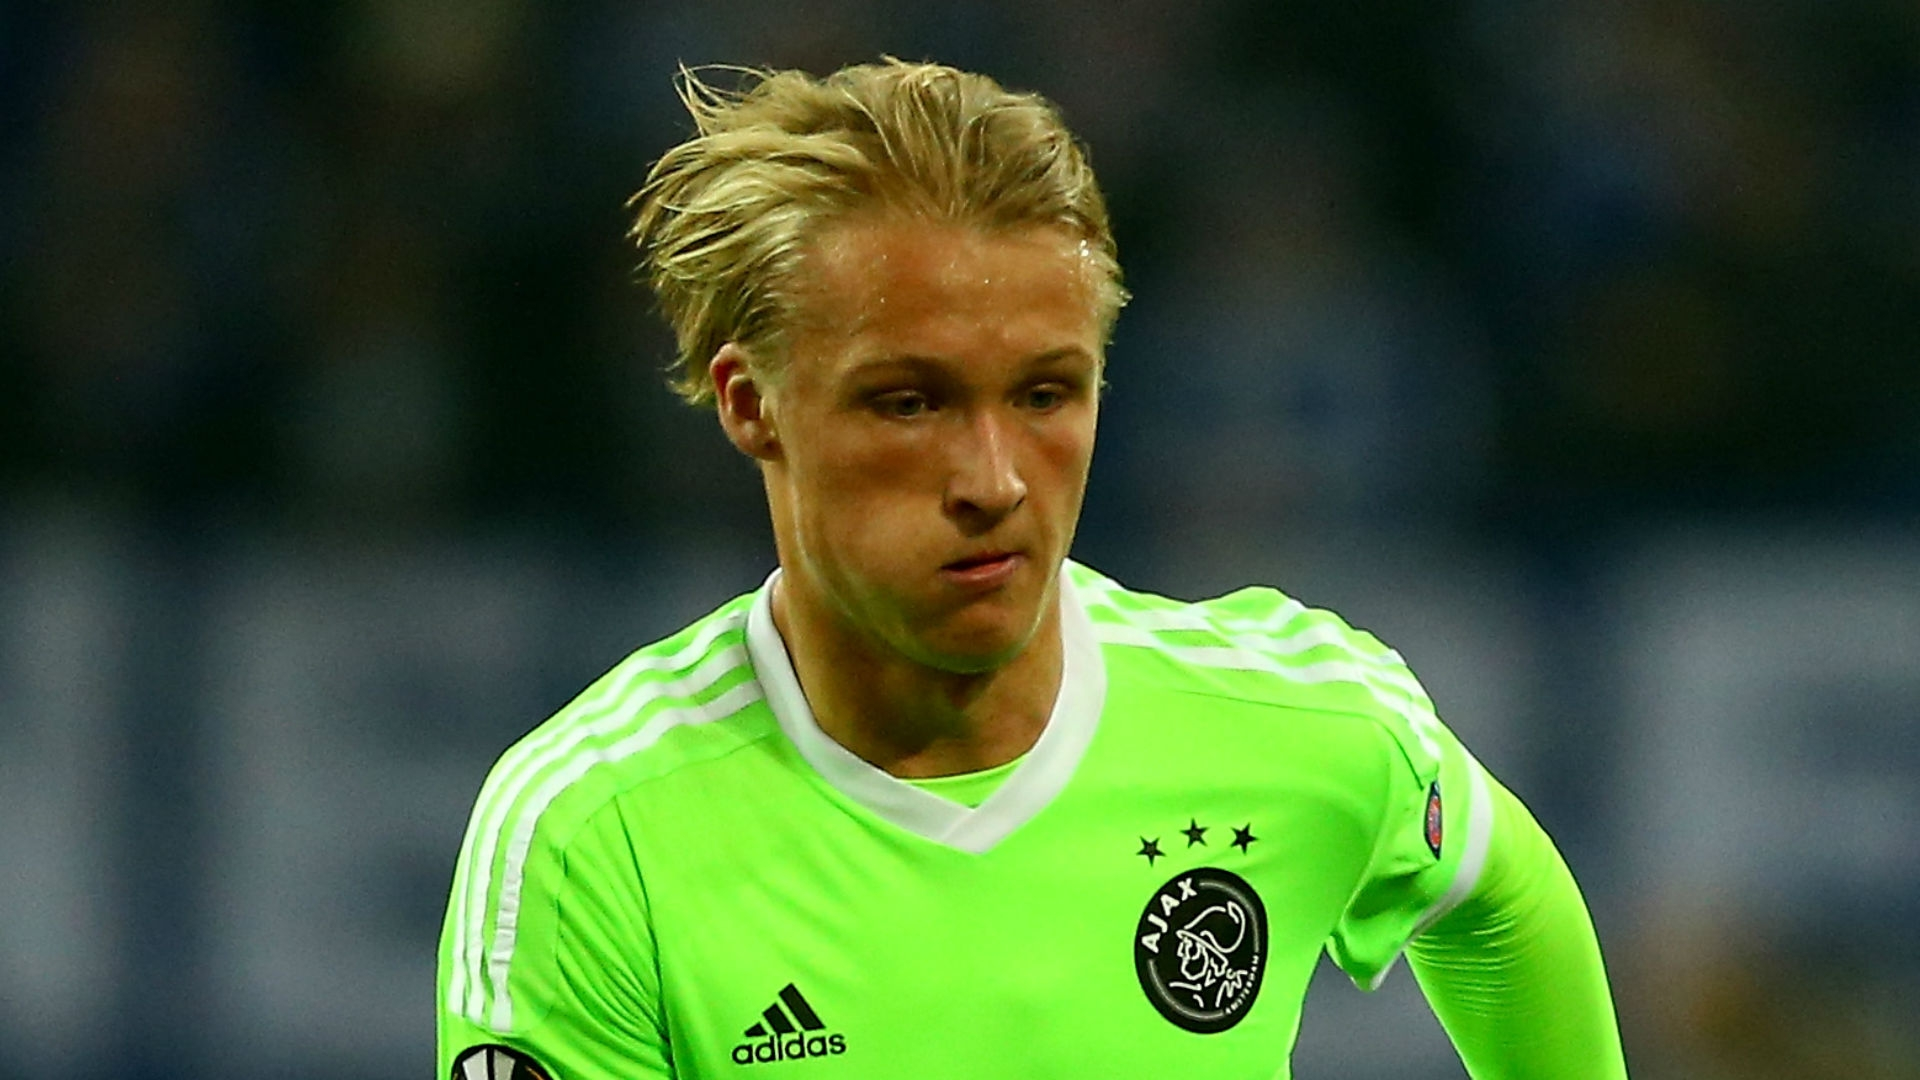 Kasper Dolberg will not be sold at the moment for any price